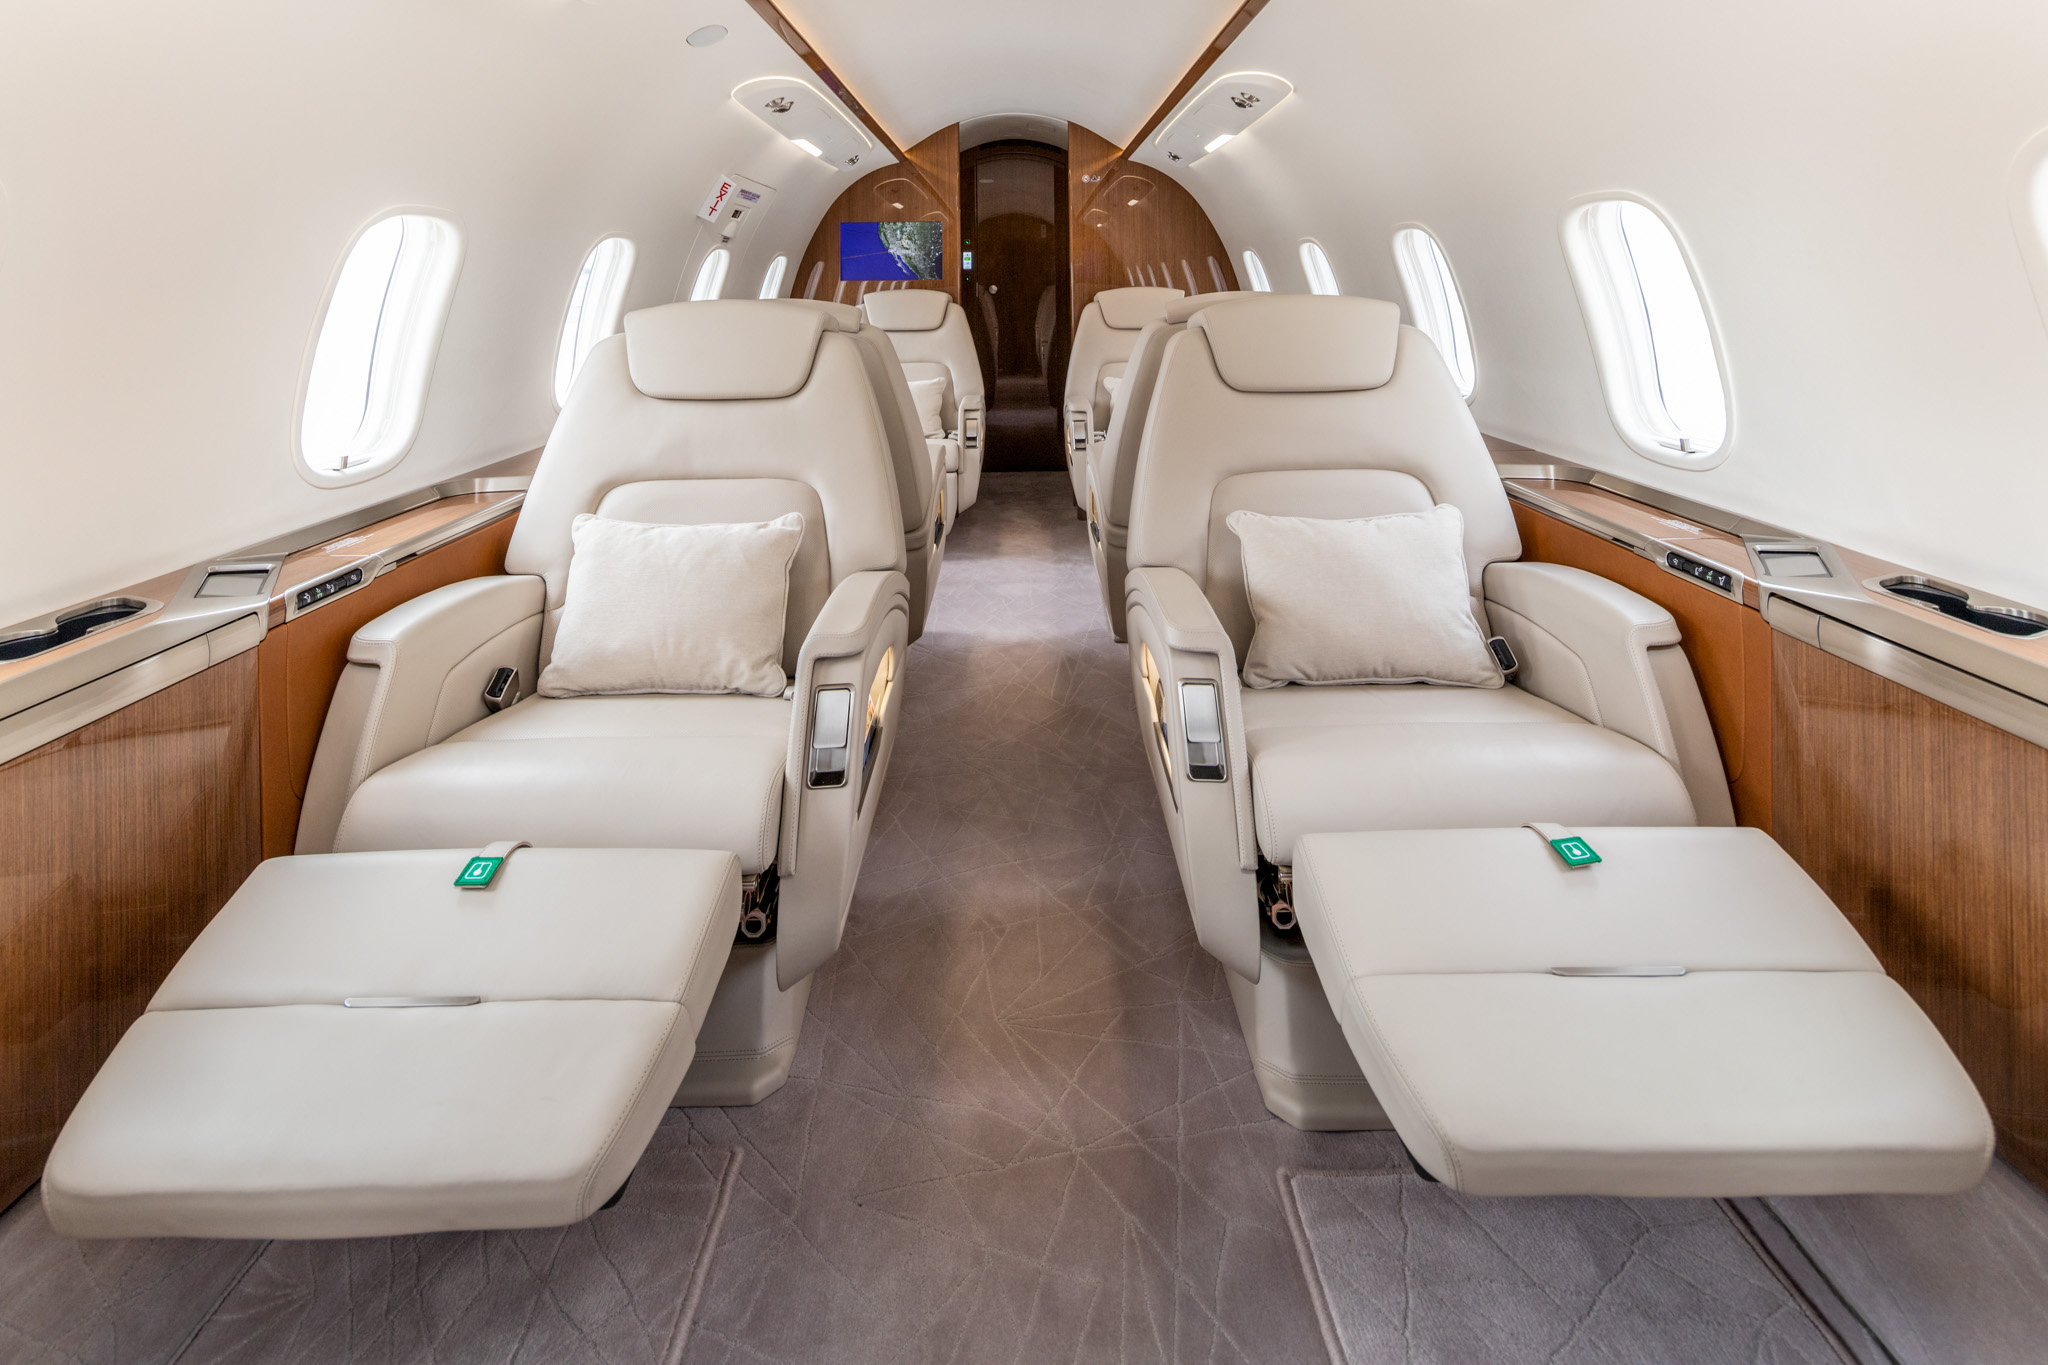 San Diego Jet Charter Retractable Seating